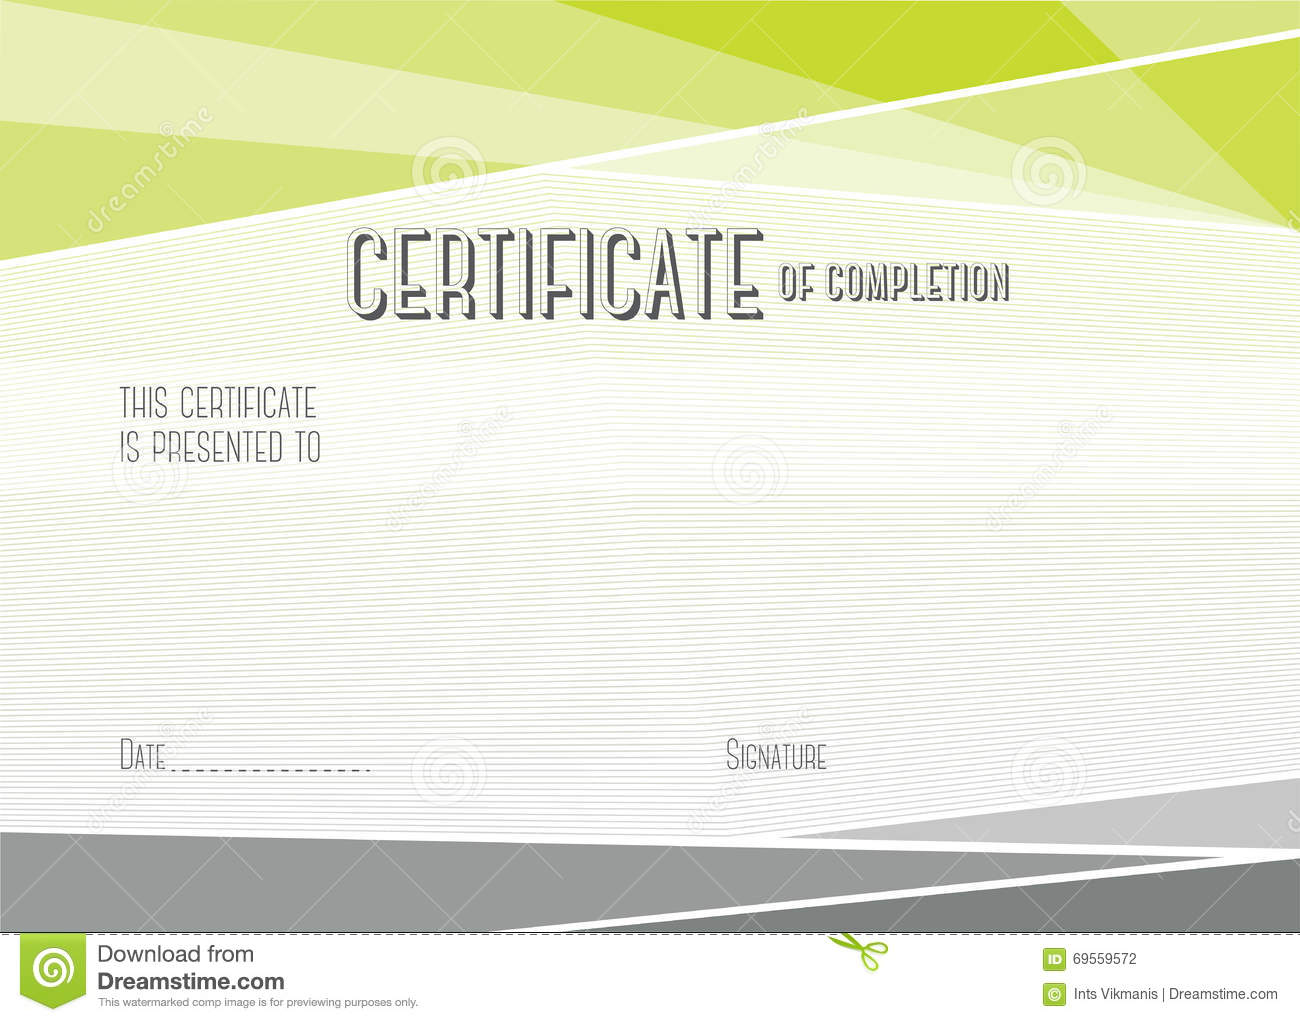 Certificate of completion templates free download choice image certificate completion template image collections templates certificate of completion template free download how to write an yelopaper Image collections